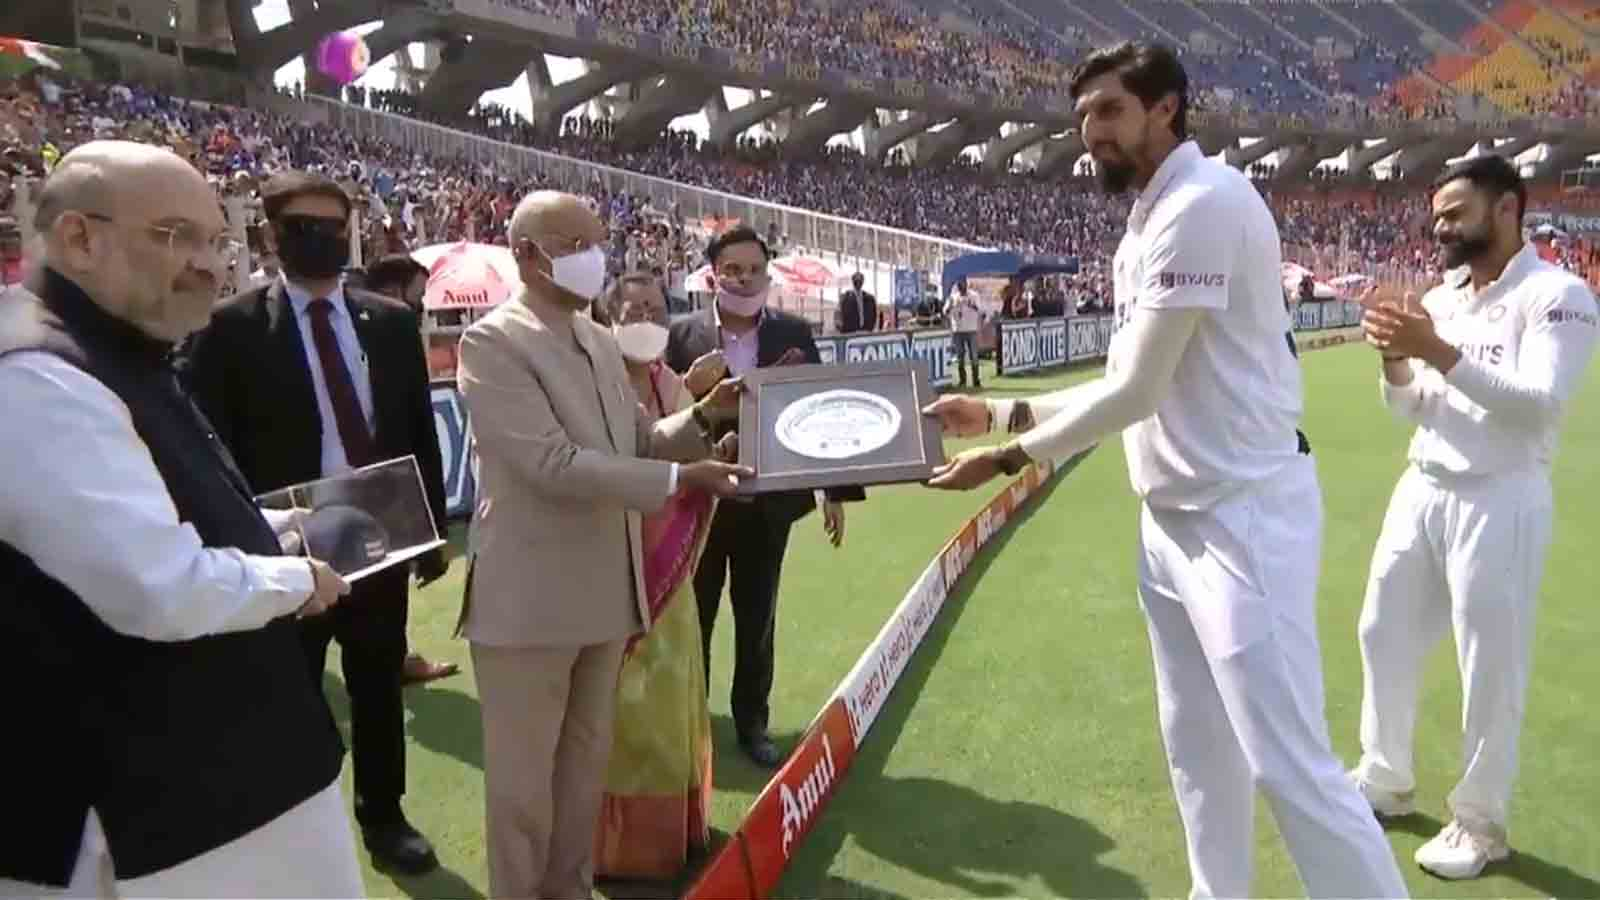 india-vs-england-president-ram-nath-kovind-amit-shah-felicitate-ishant-sharma-before-his-100th-test